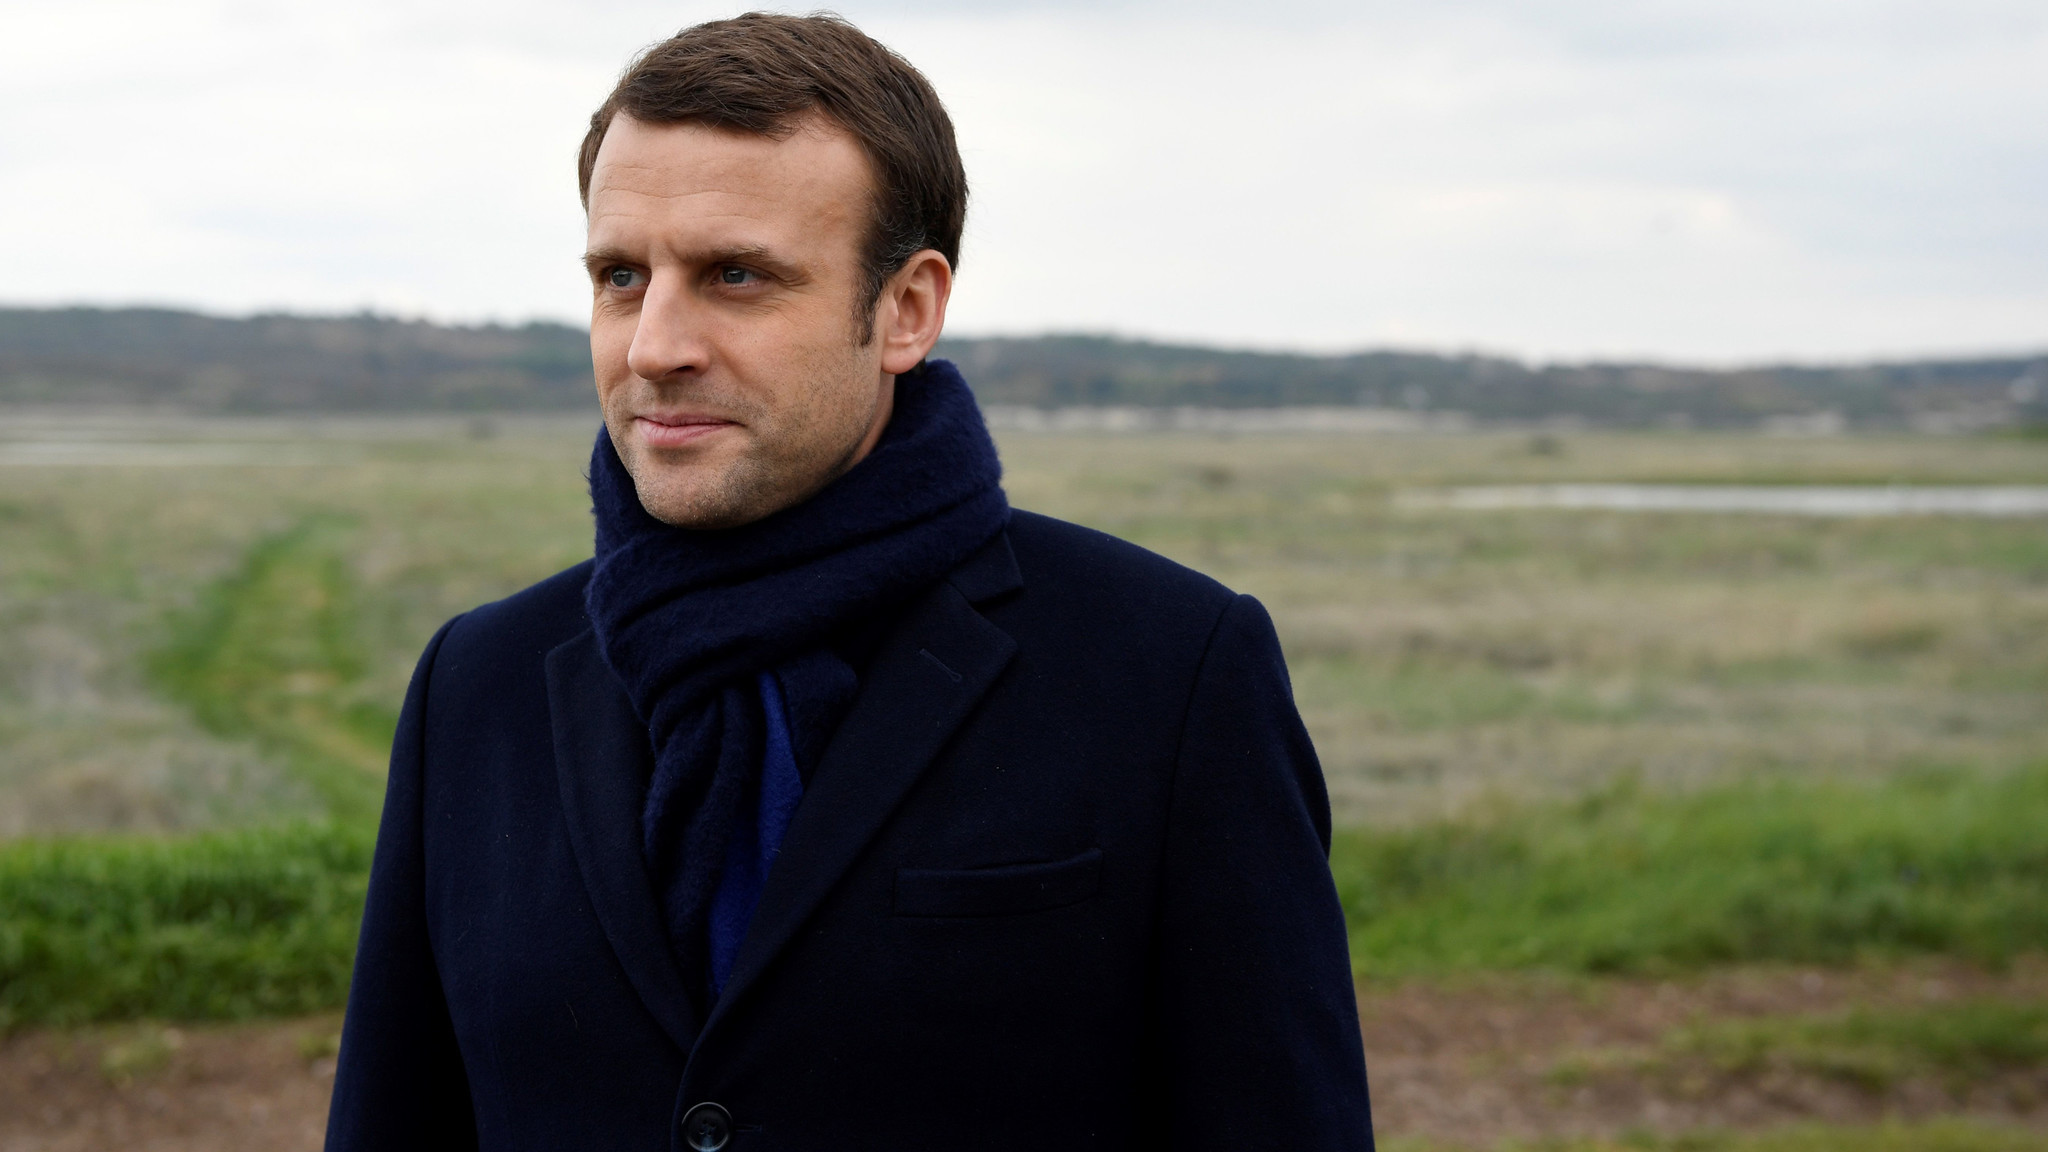 French presidential election candidate Emmanuel Macron.